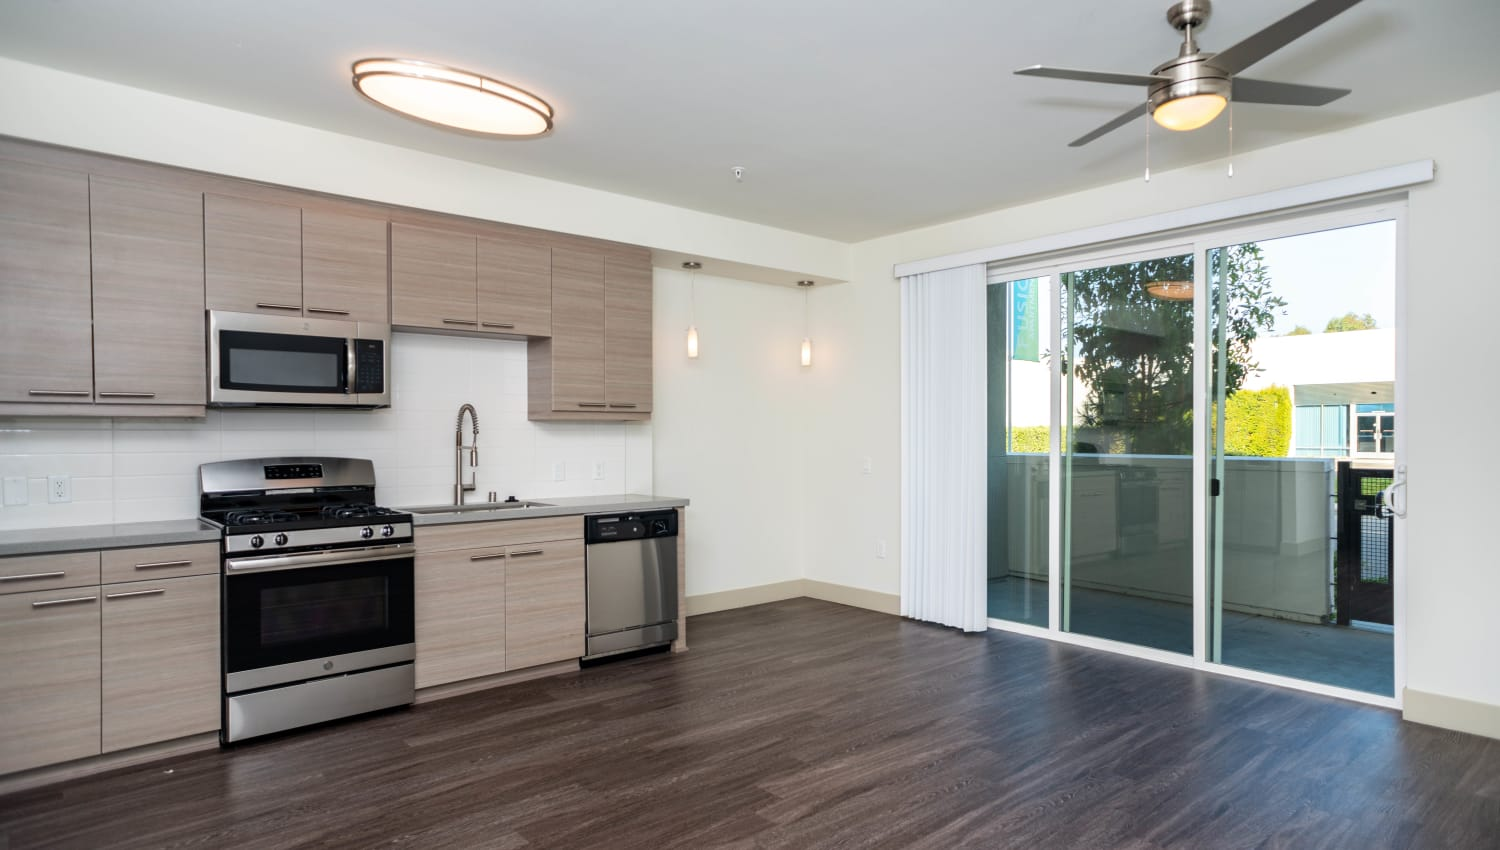 Ceiling fan near the kitchen and a sliding door to the private balcony outside a model home at Fusion Apartments in Irvine, California